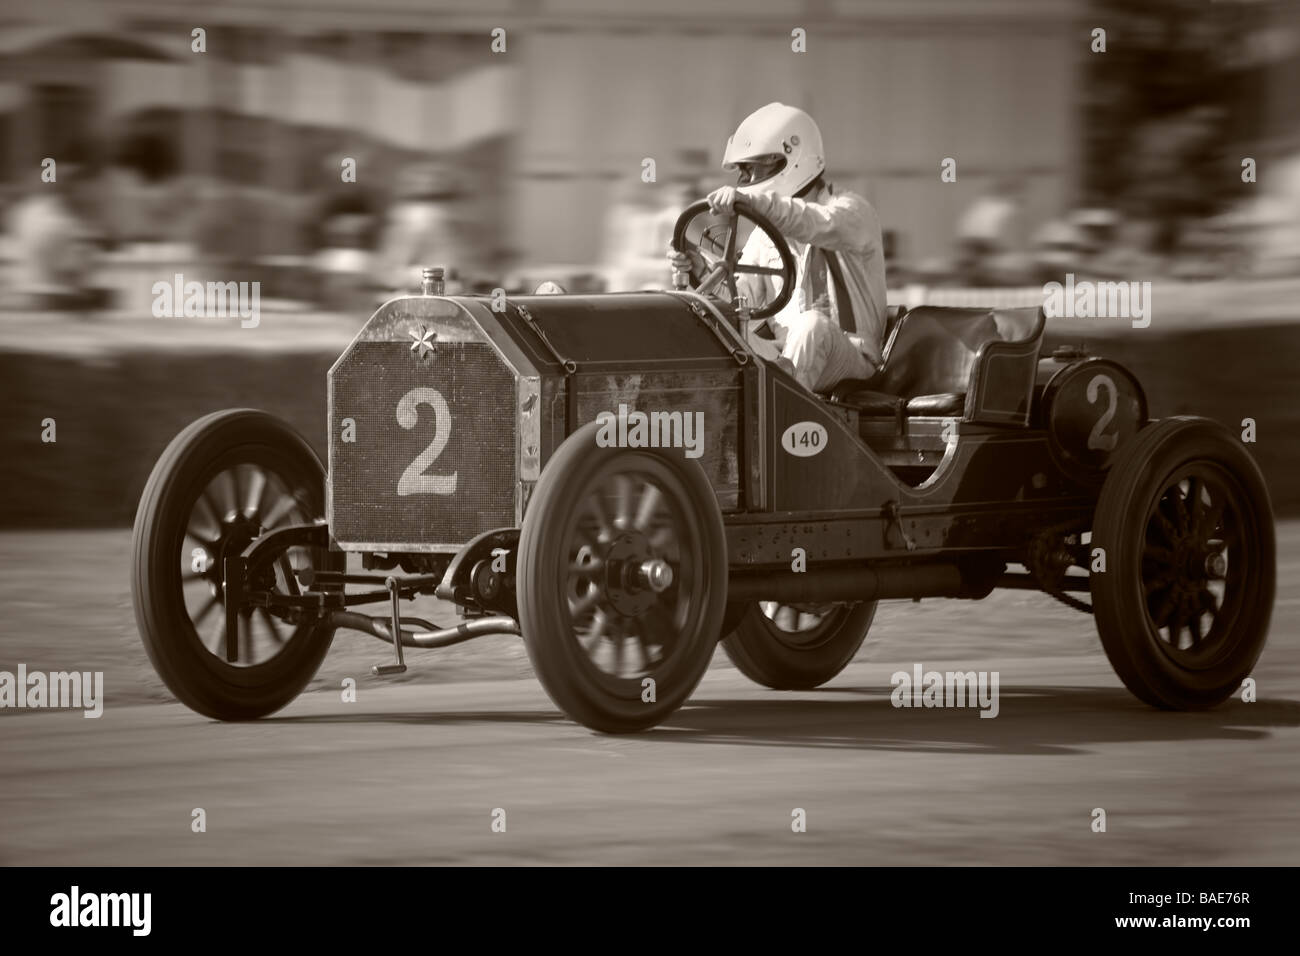 Vintage car racing at Goodwood Festival of Speed Stock Photo ...